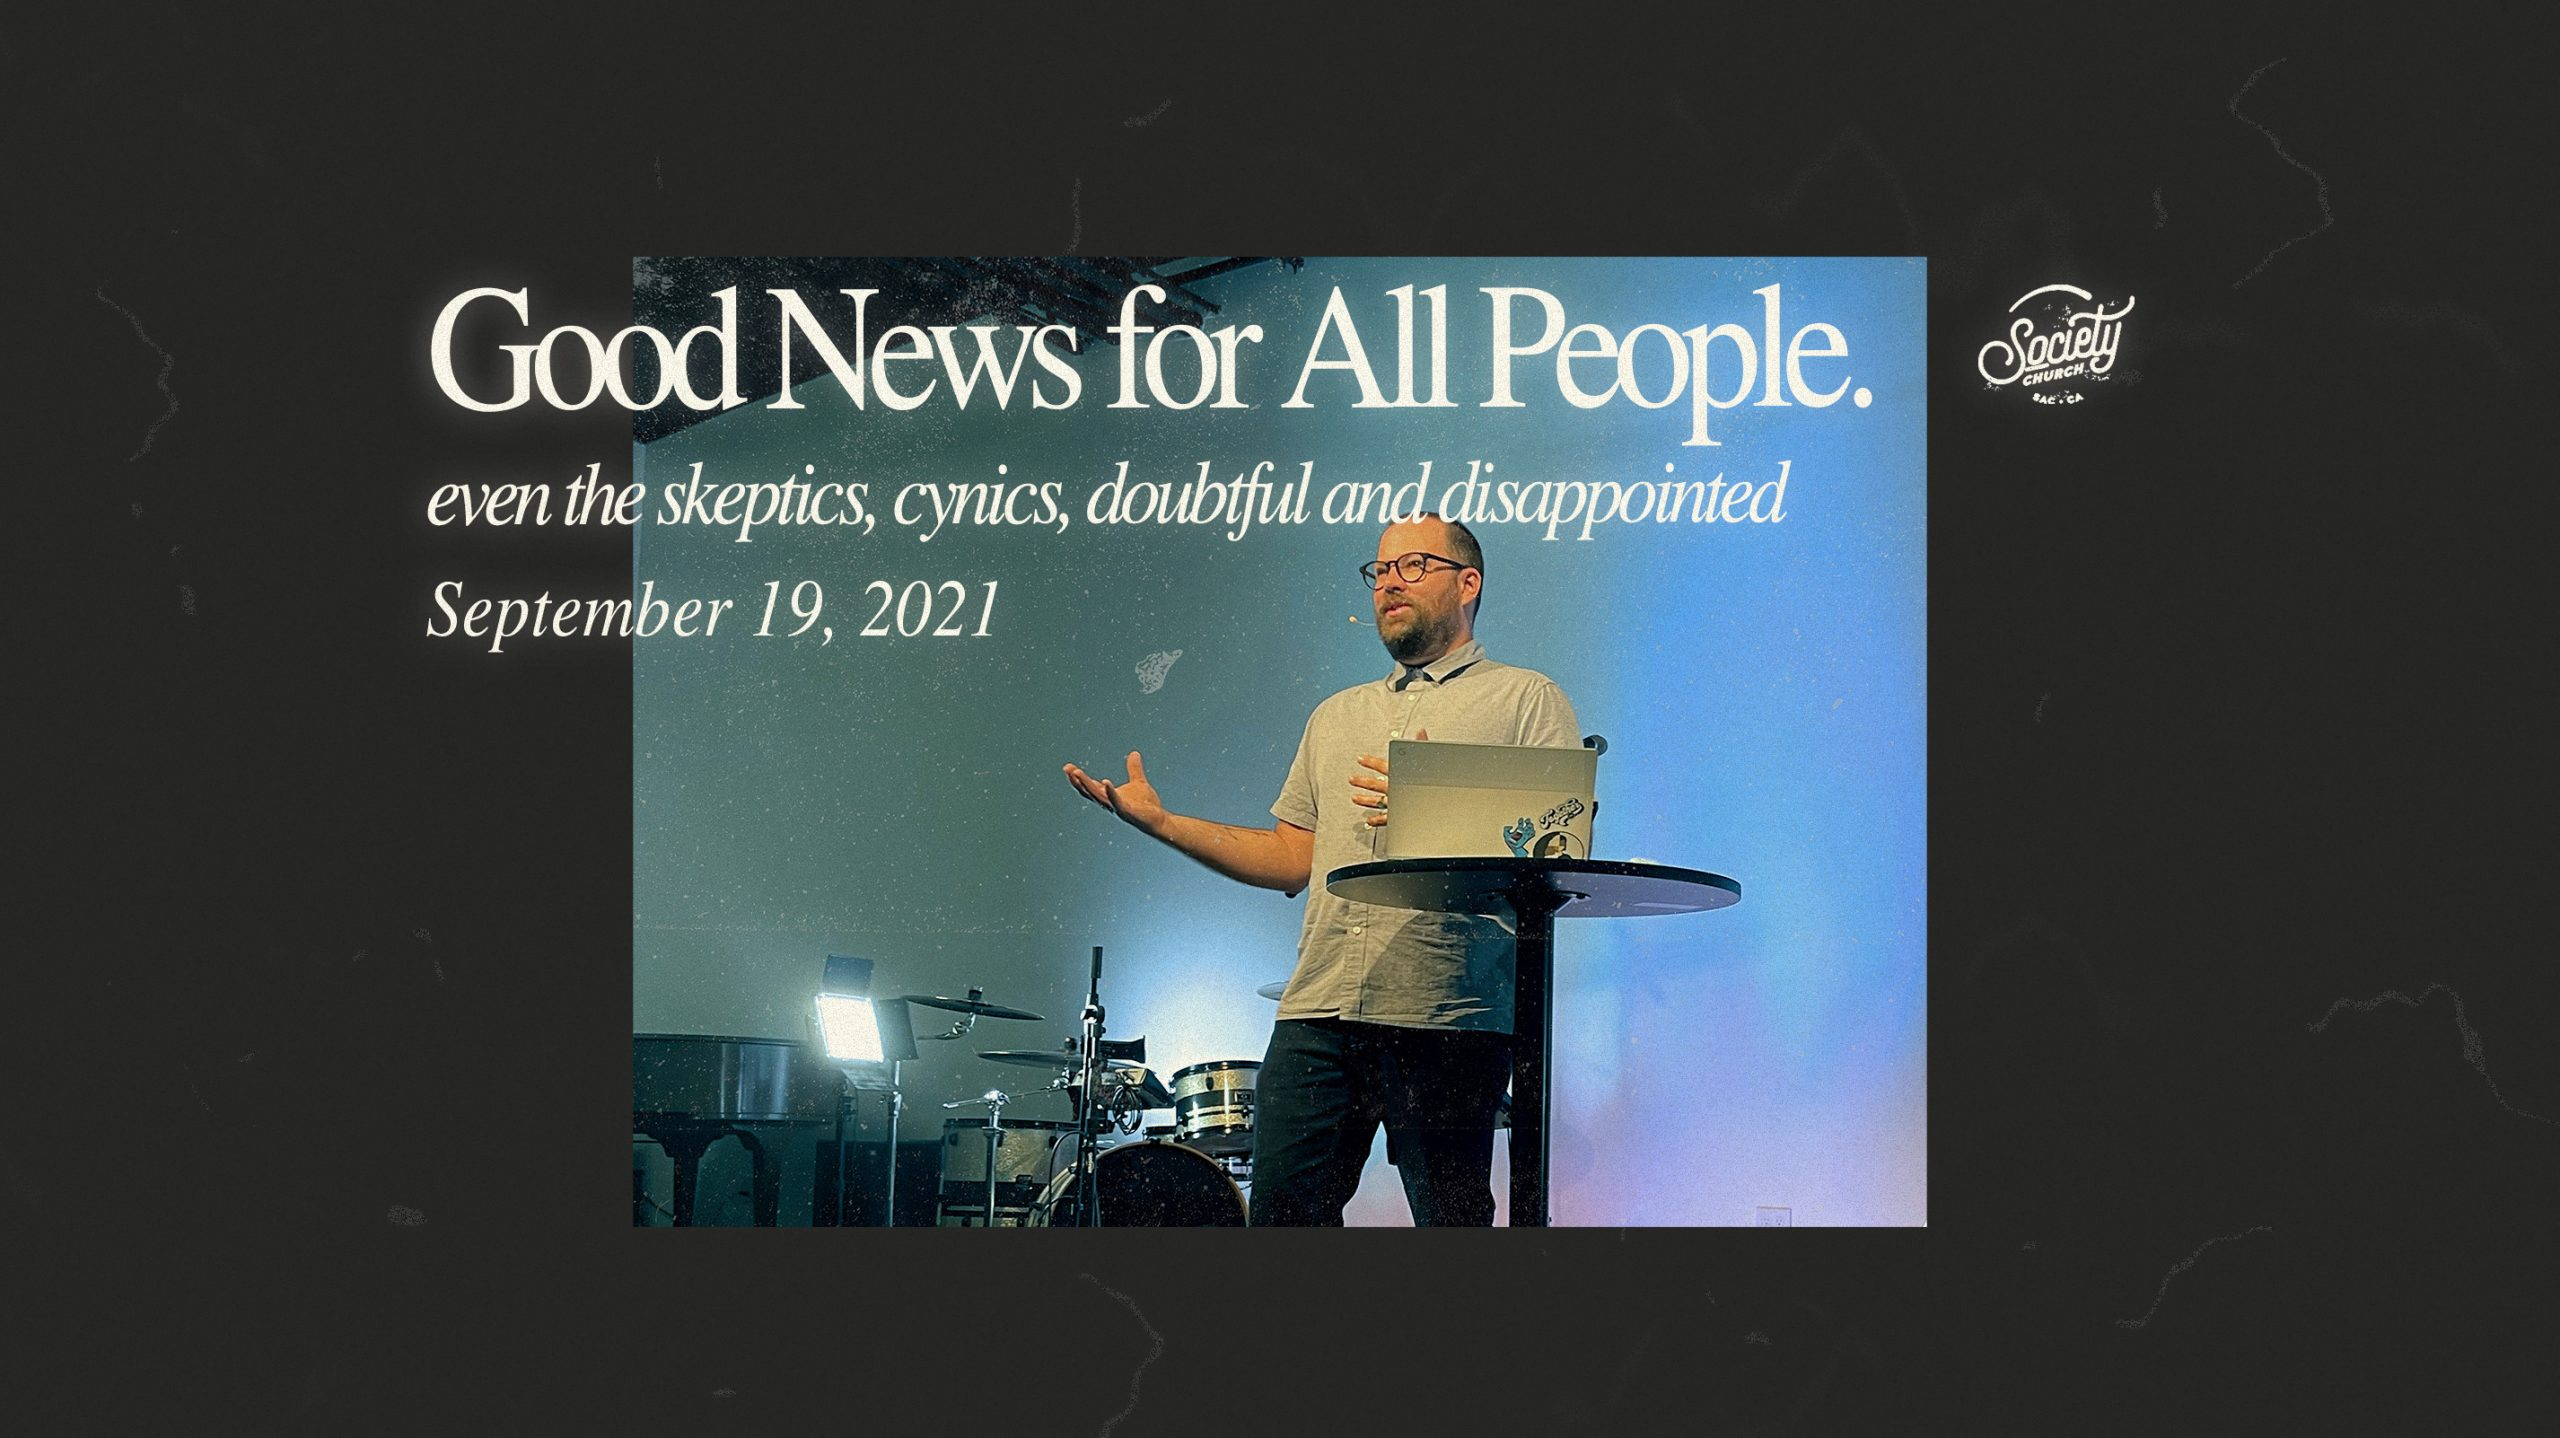 Good News for All People; even the skeptics, cynics, doubtful and disappointed.